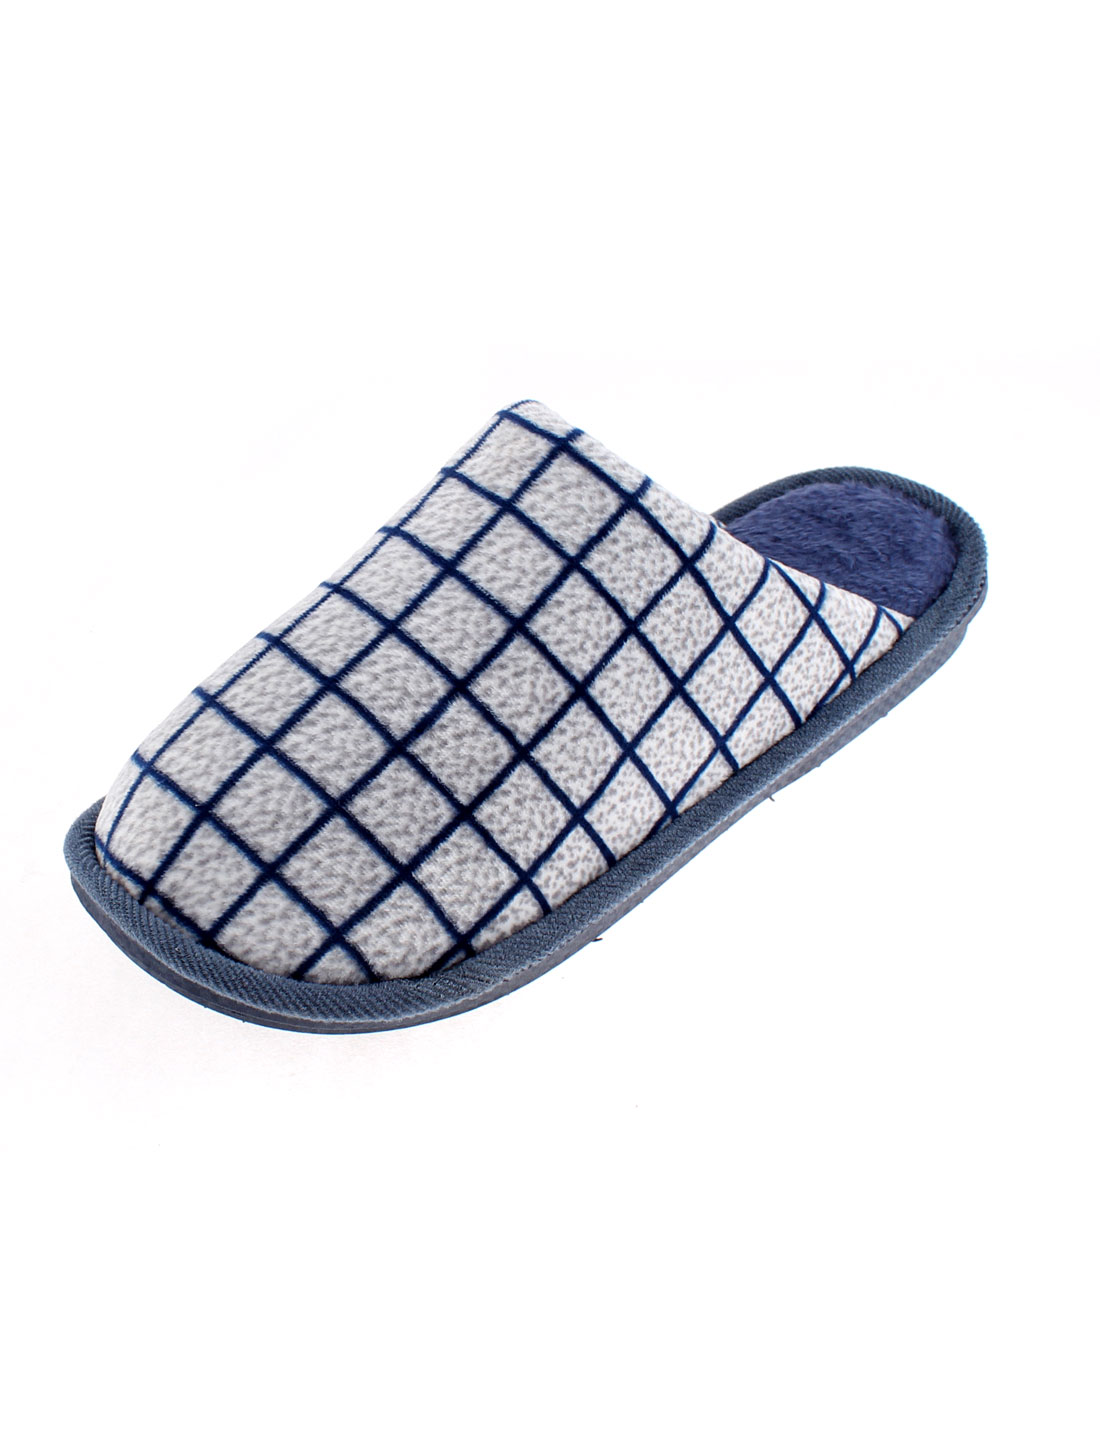 Women Grid Pattern Non-skid Casual Warmer Cotton Slippers Blue US 9